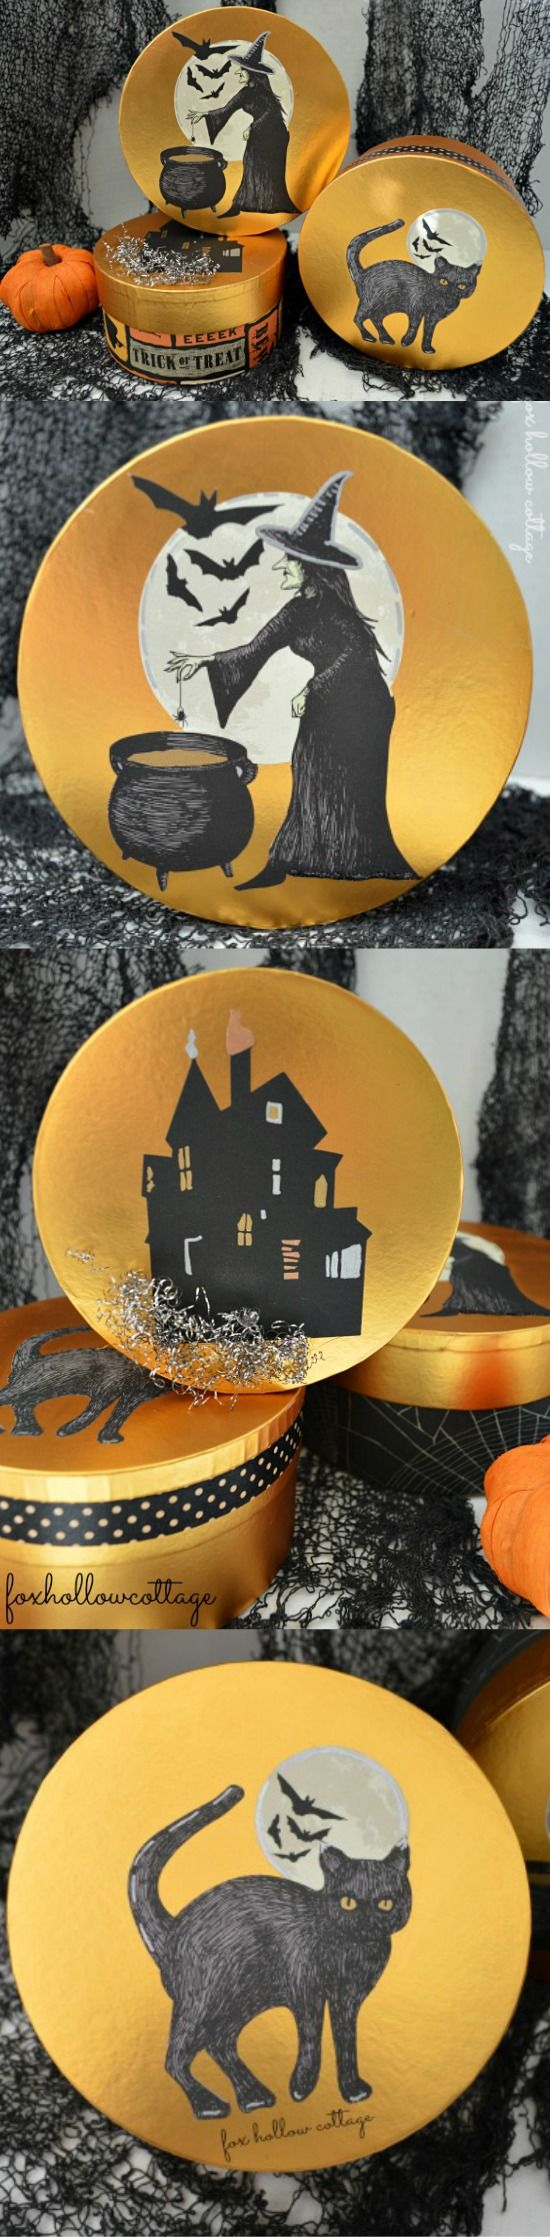 Halloween Decoupage Craft with @Alissa Huybers Crafts  #marthastewart #MSHalloween #Halloweencraft #sponsored